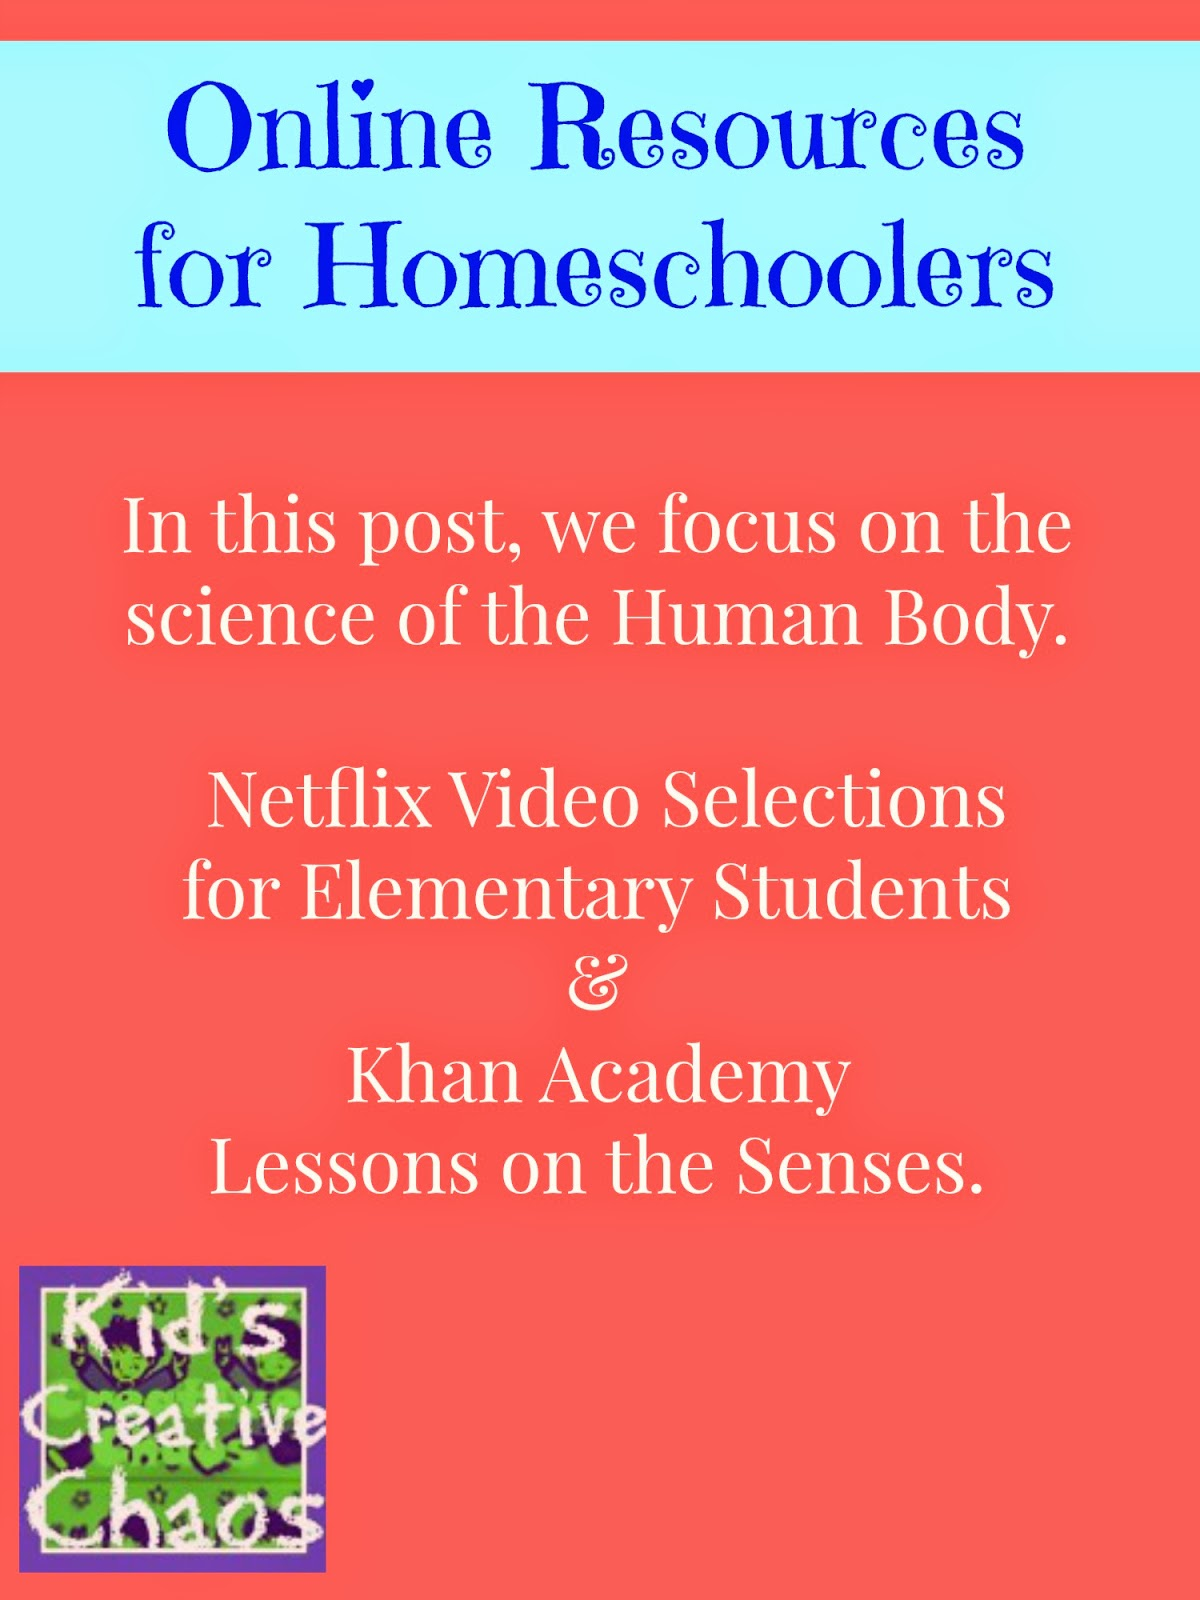 Elementary Homeschooling Science and Health Resources Online: From Netflix to Khan Academy